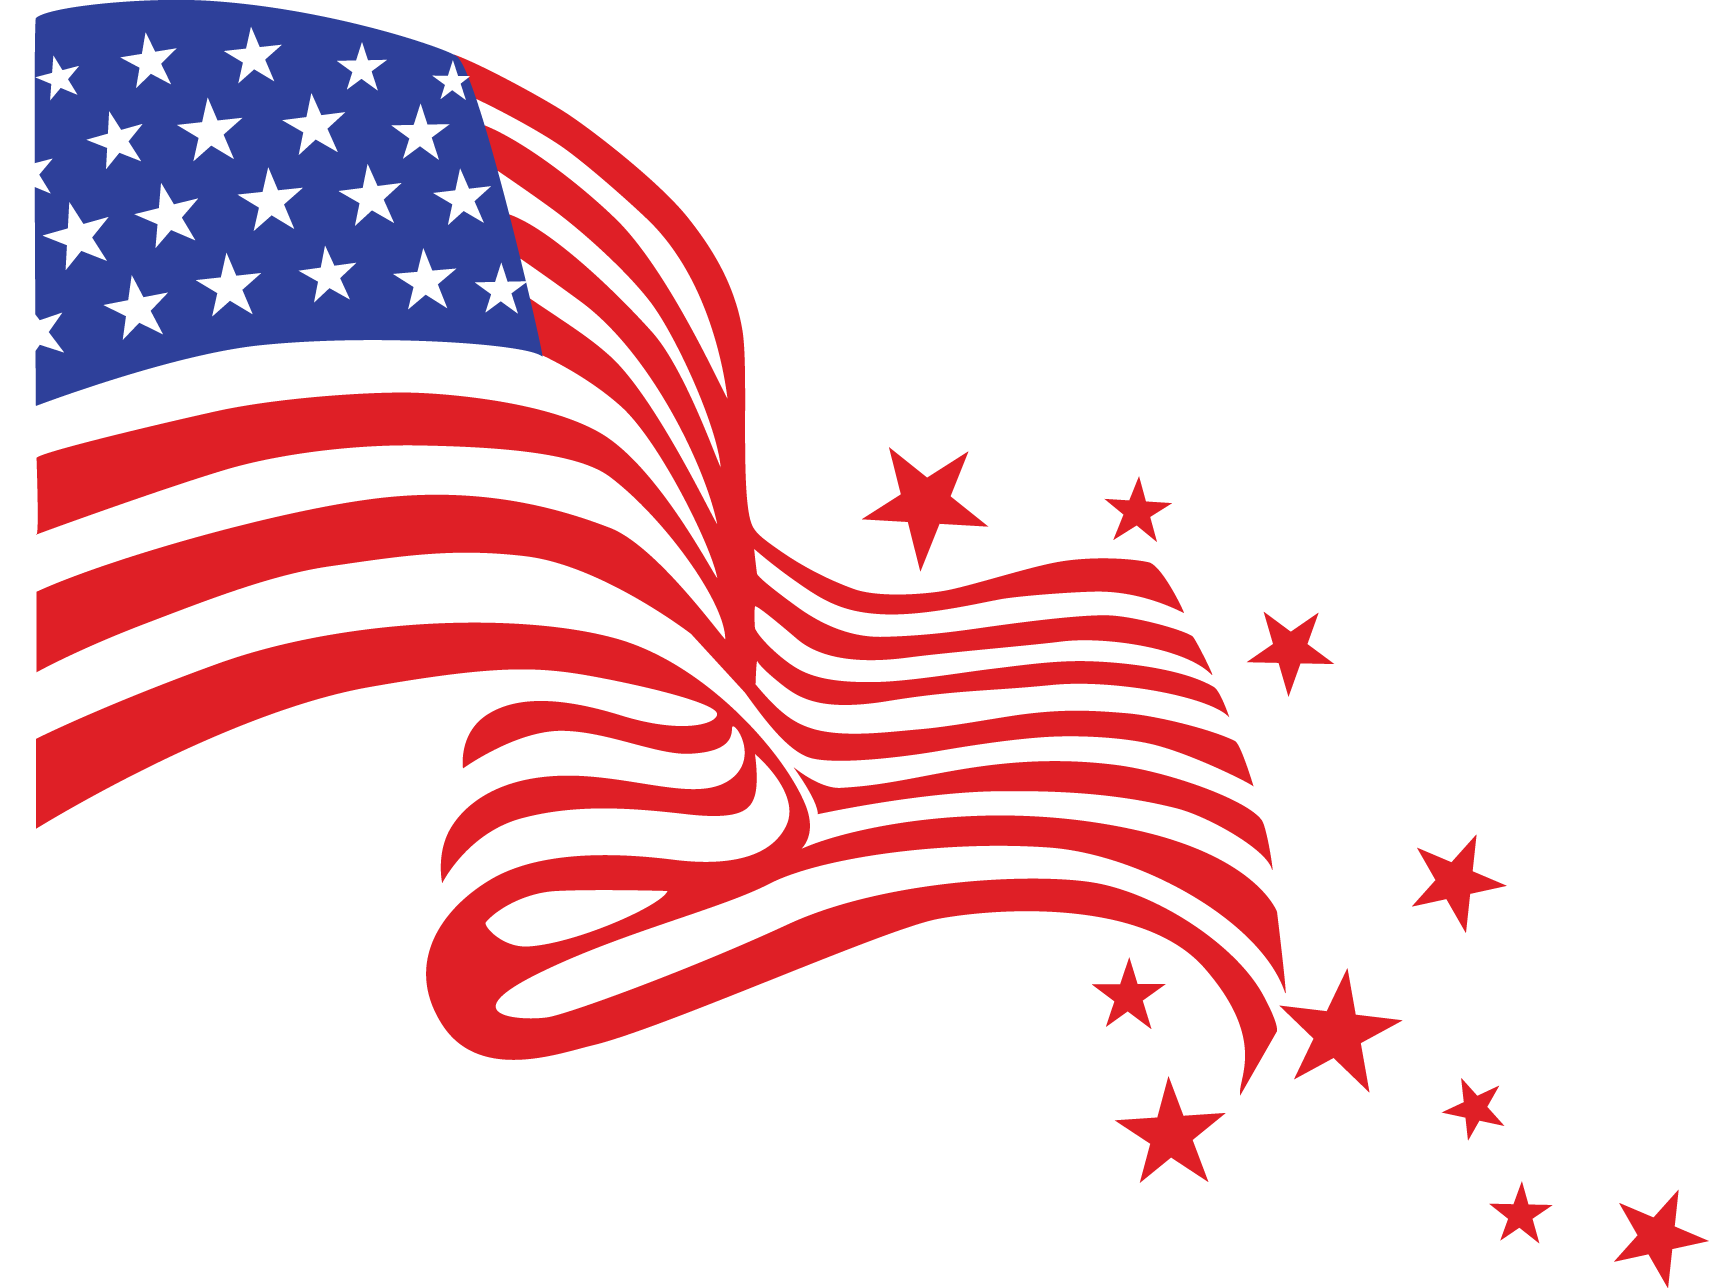 American flag with fireworks clipart picture freeuse stock American flag and fireworks clipart » Clipart Portal picture freeuse stock